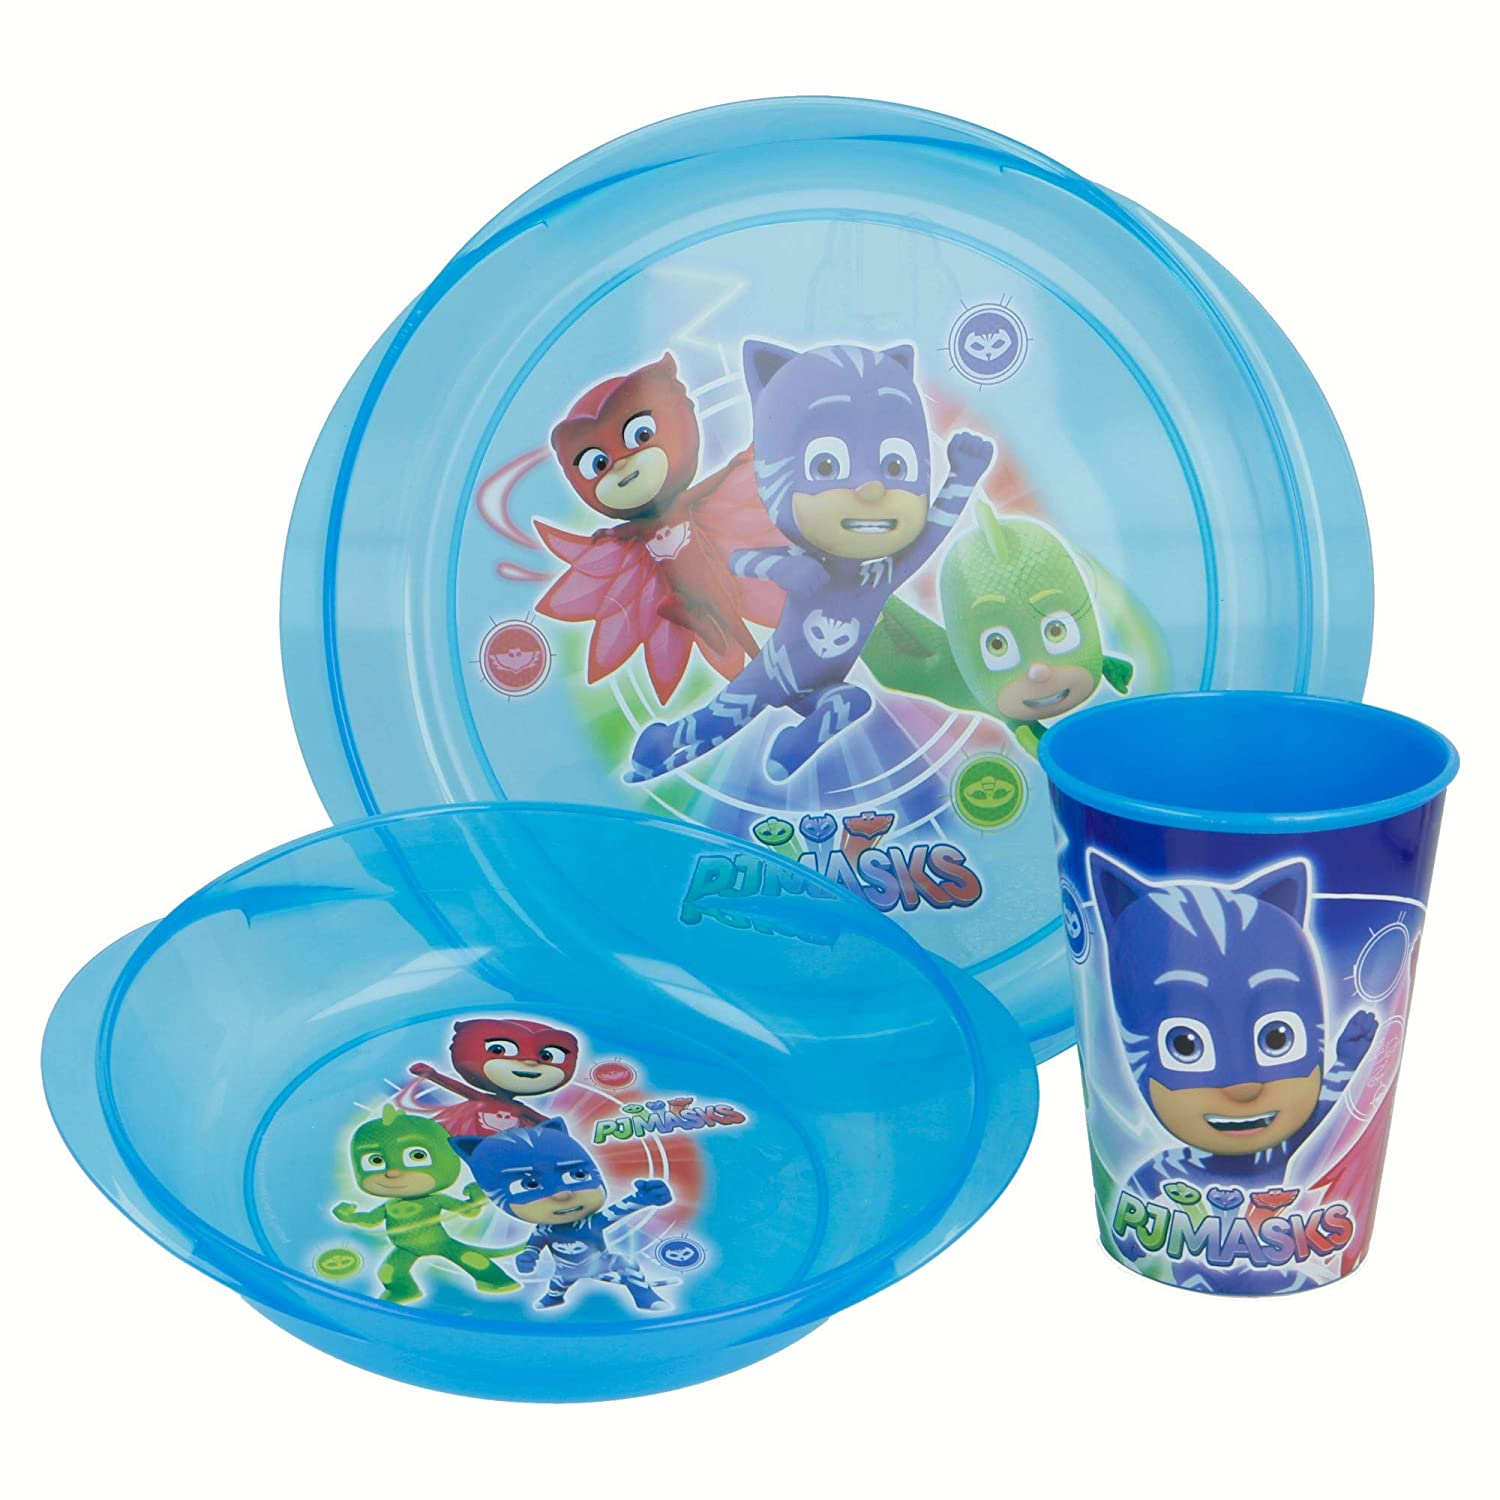 SET MICRO EASY 3 PCS. (PLATO, CUENCO Y VASO) PJ MASKS ...